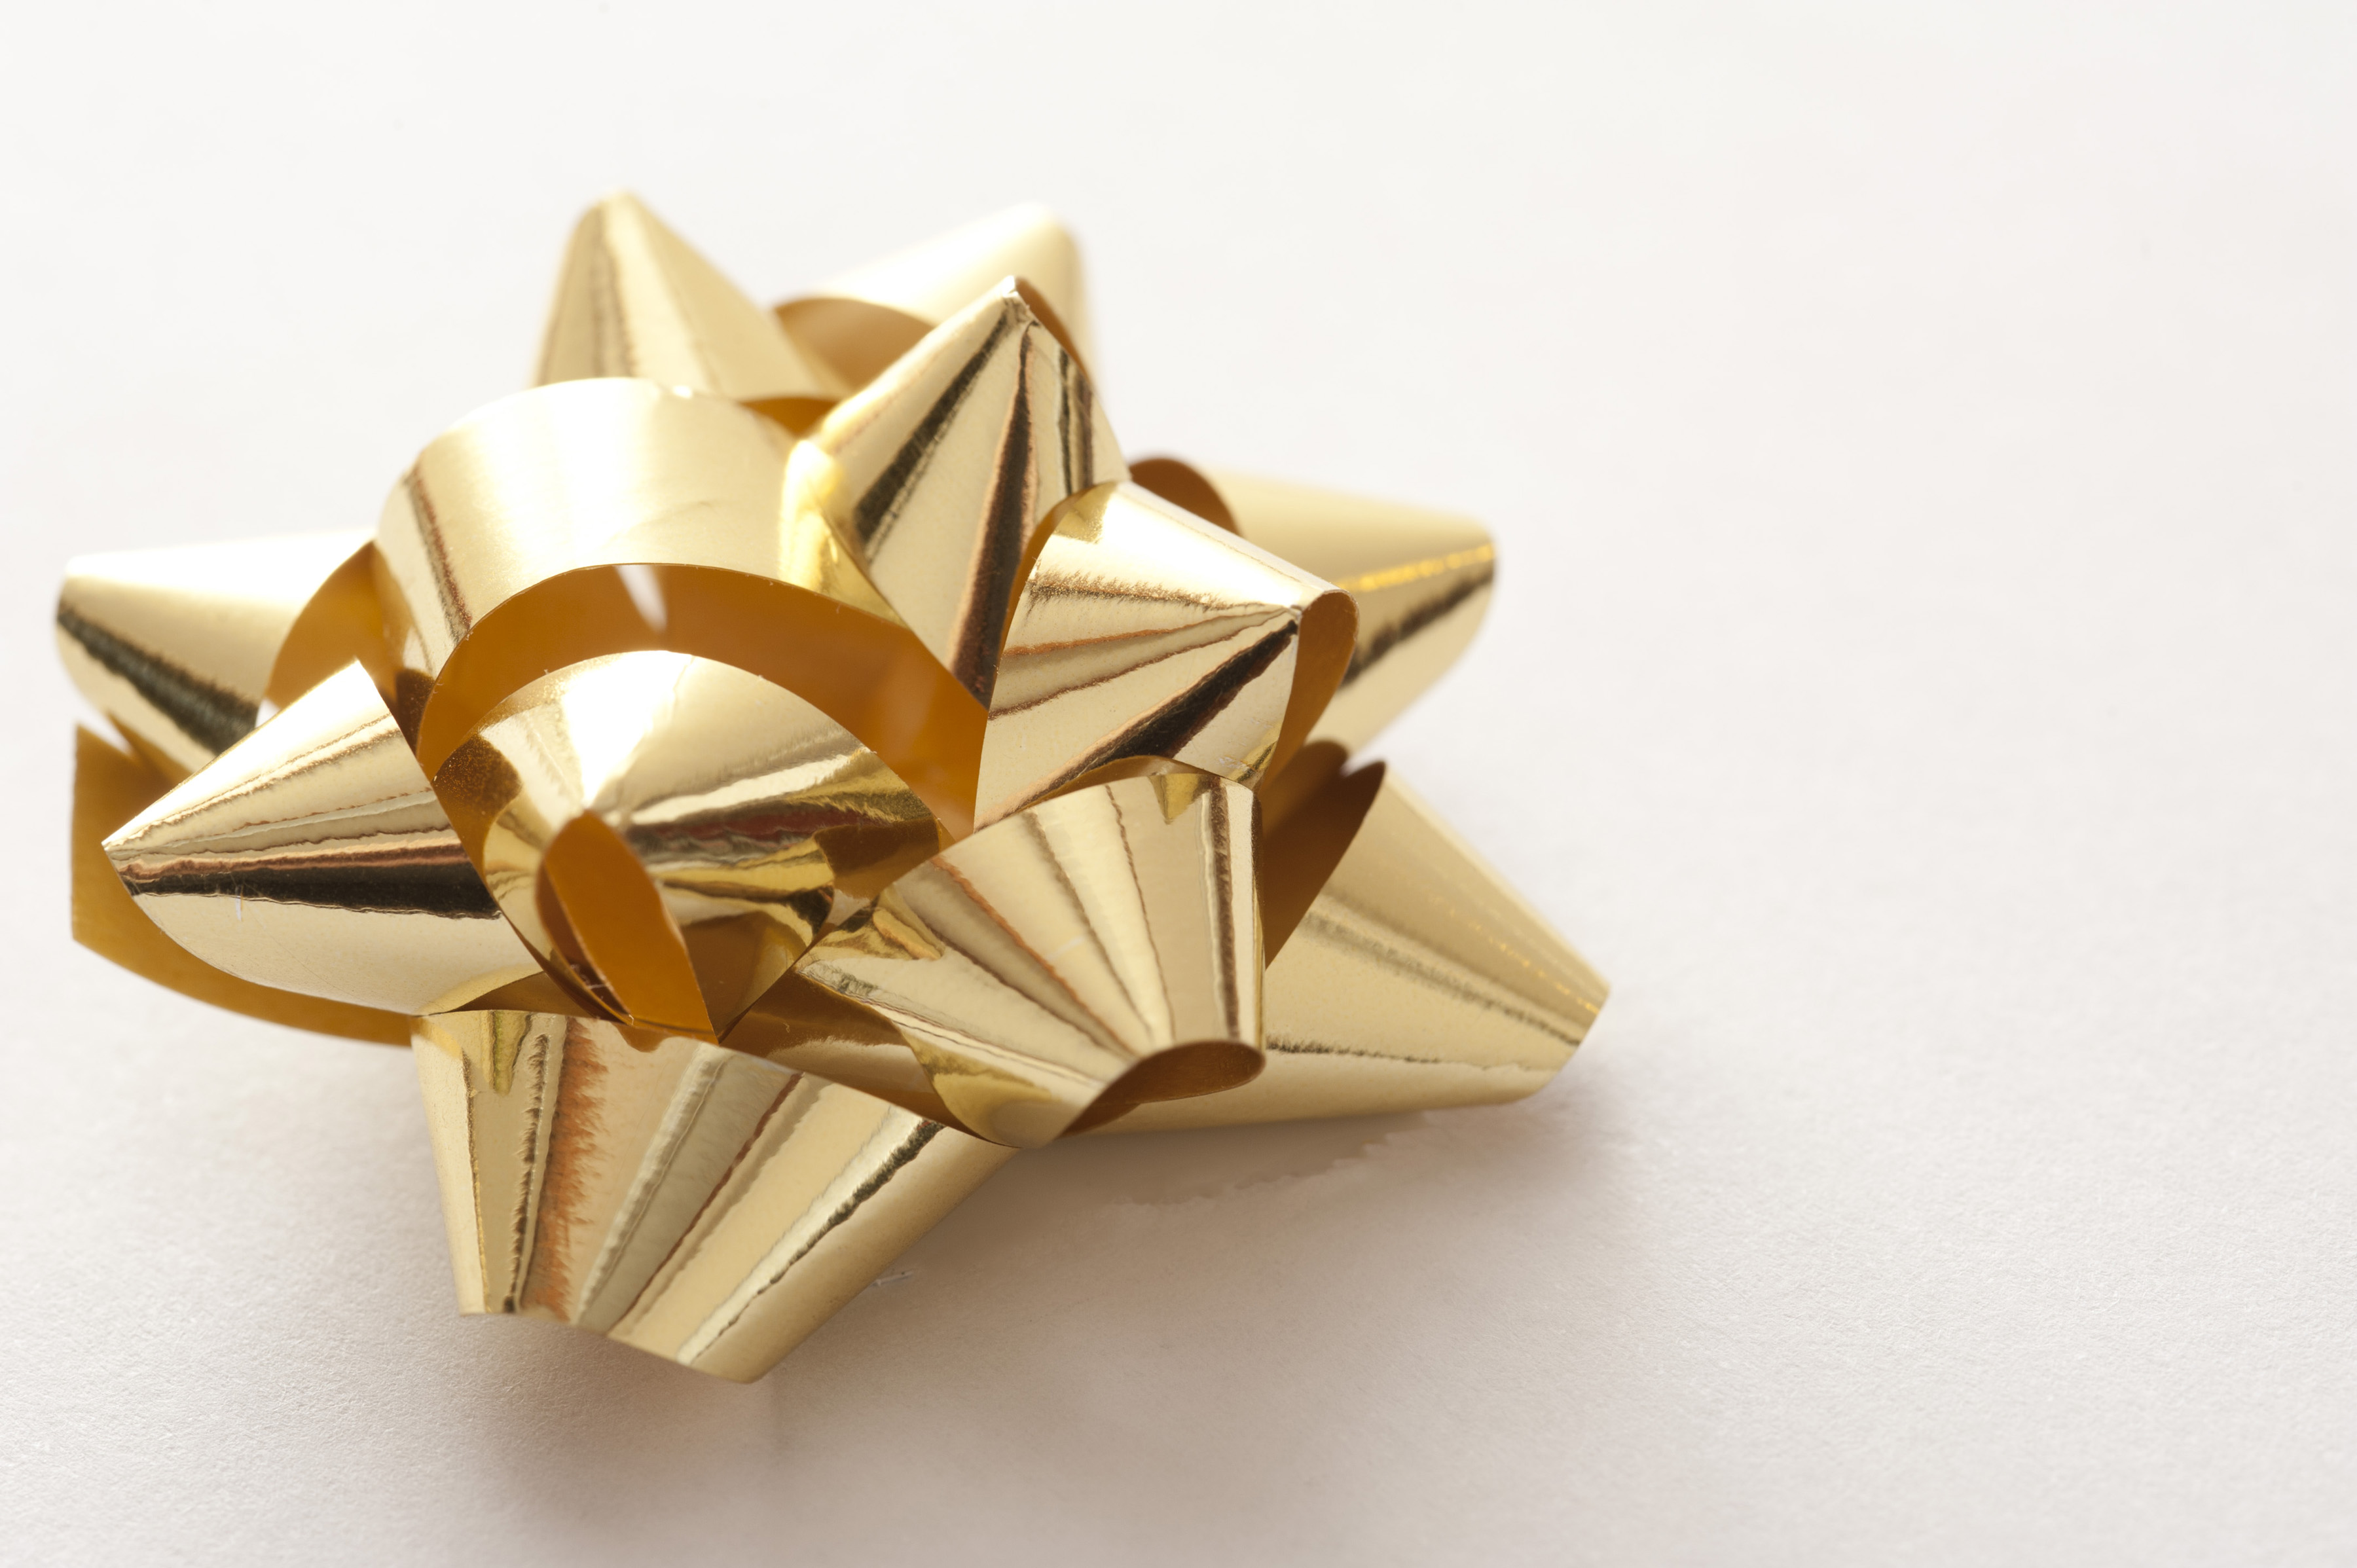 golden shiny gift wrap bow on a white backdrop